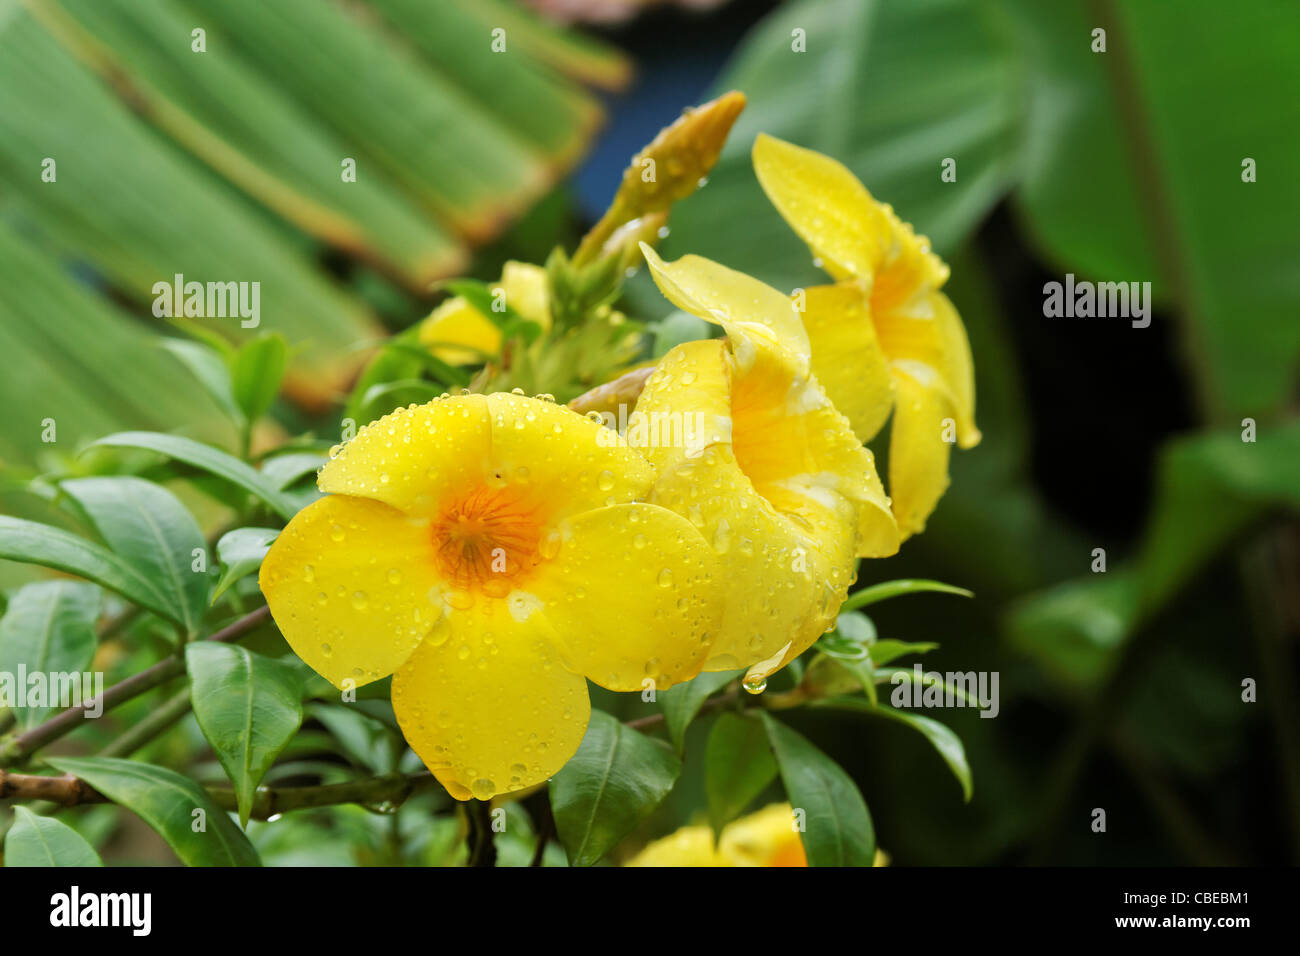 Indian Monsoon Flowers Stock Photos Indian Monsoon Flowers Stock